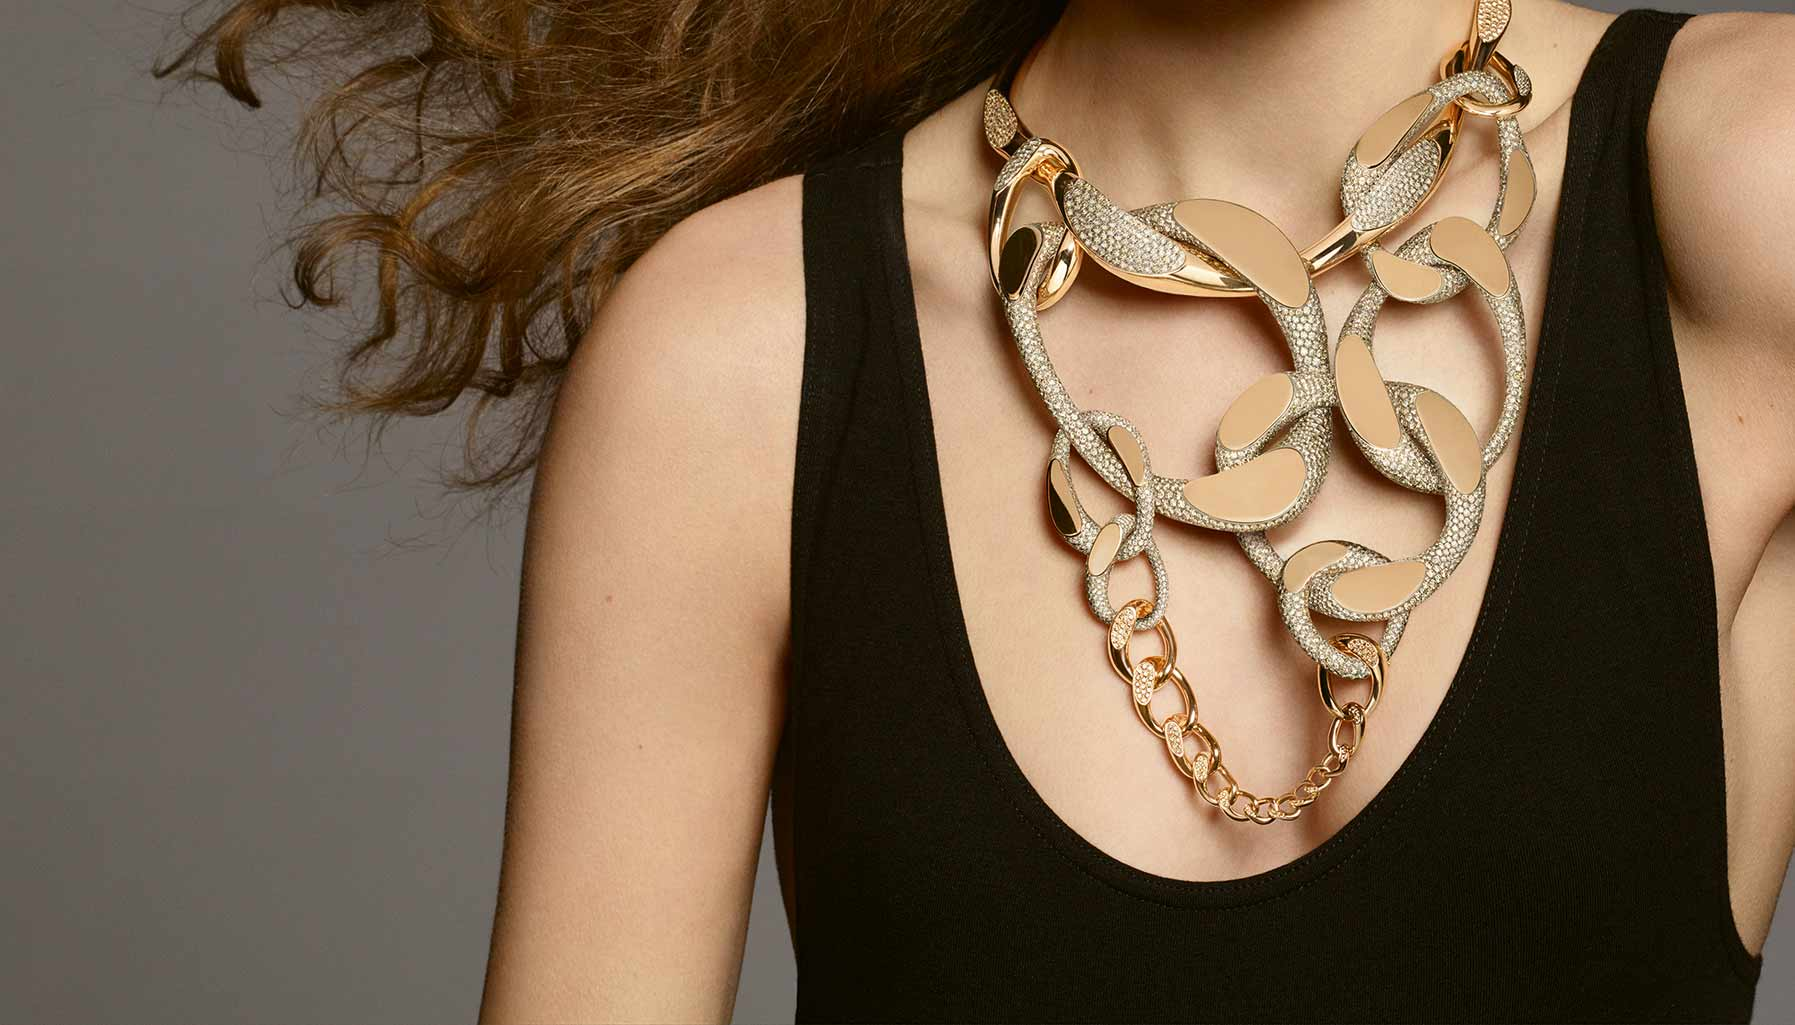 Hermes Enchainements libres fine jewellery collection